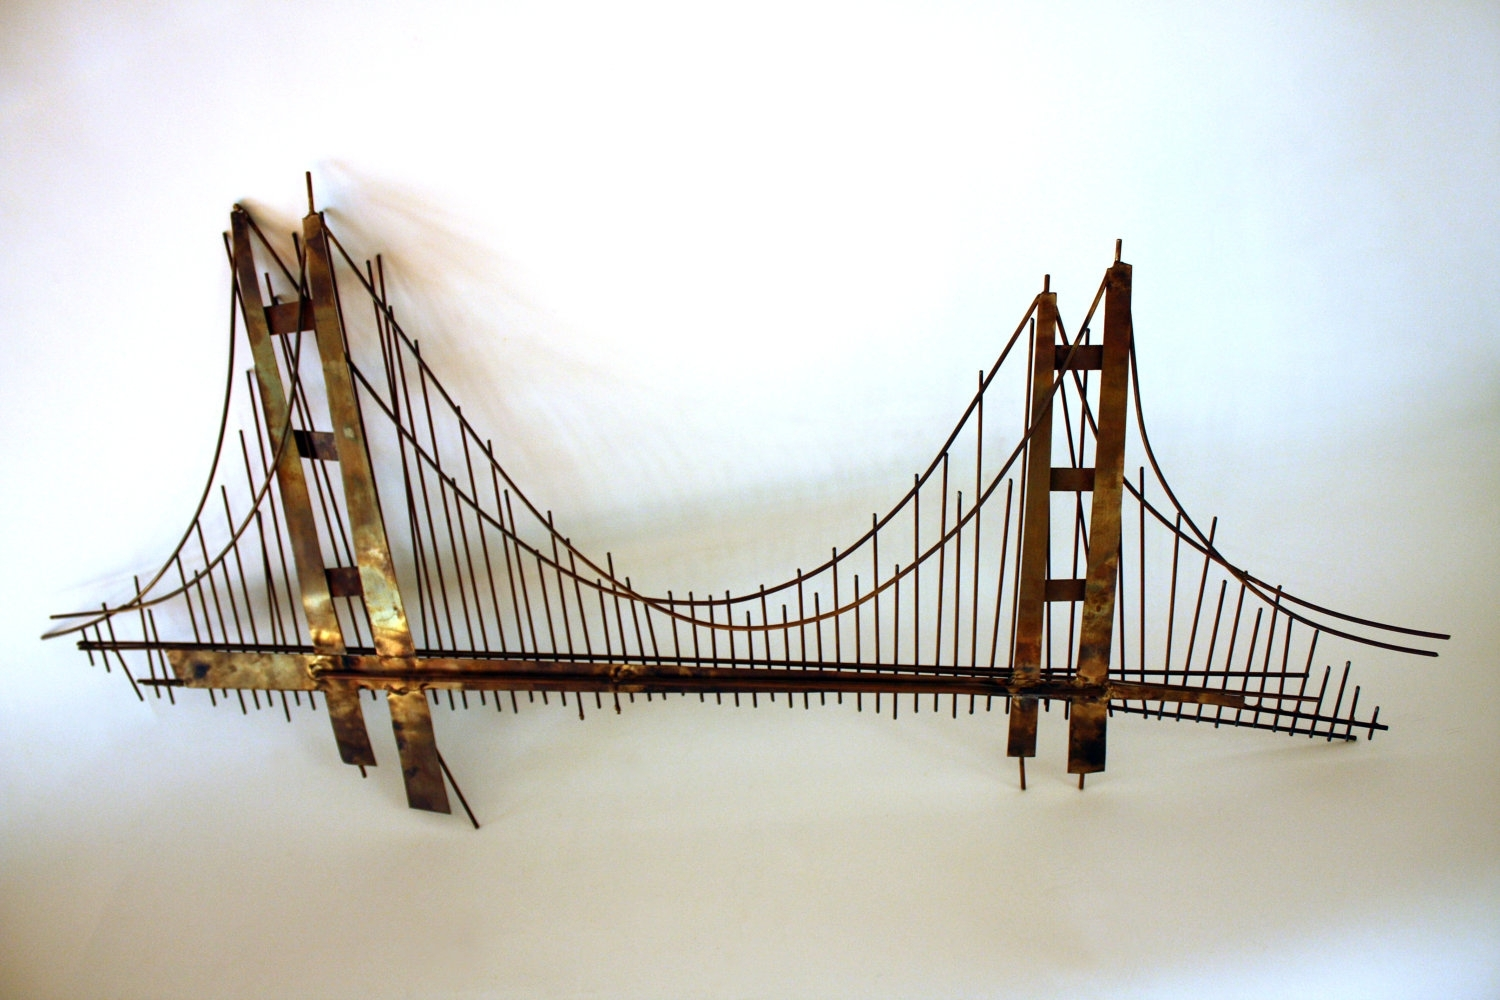 Wall Art Decor: 3 Dimension Hanging Golden Gate Bridge Wall Art With Regard To Most Recently Released Golden Gate Bridge Canvas Wall Art (View 13 of 15)